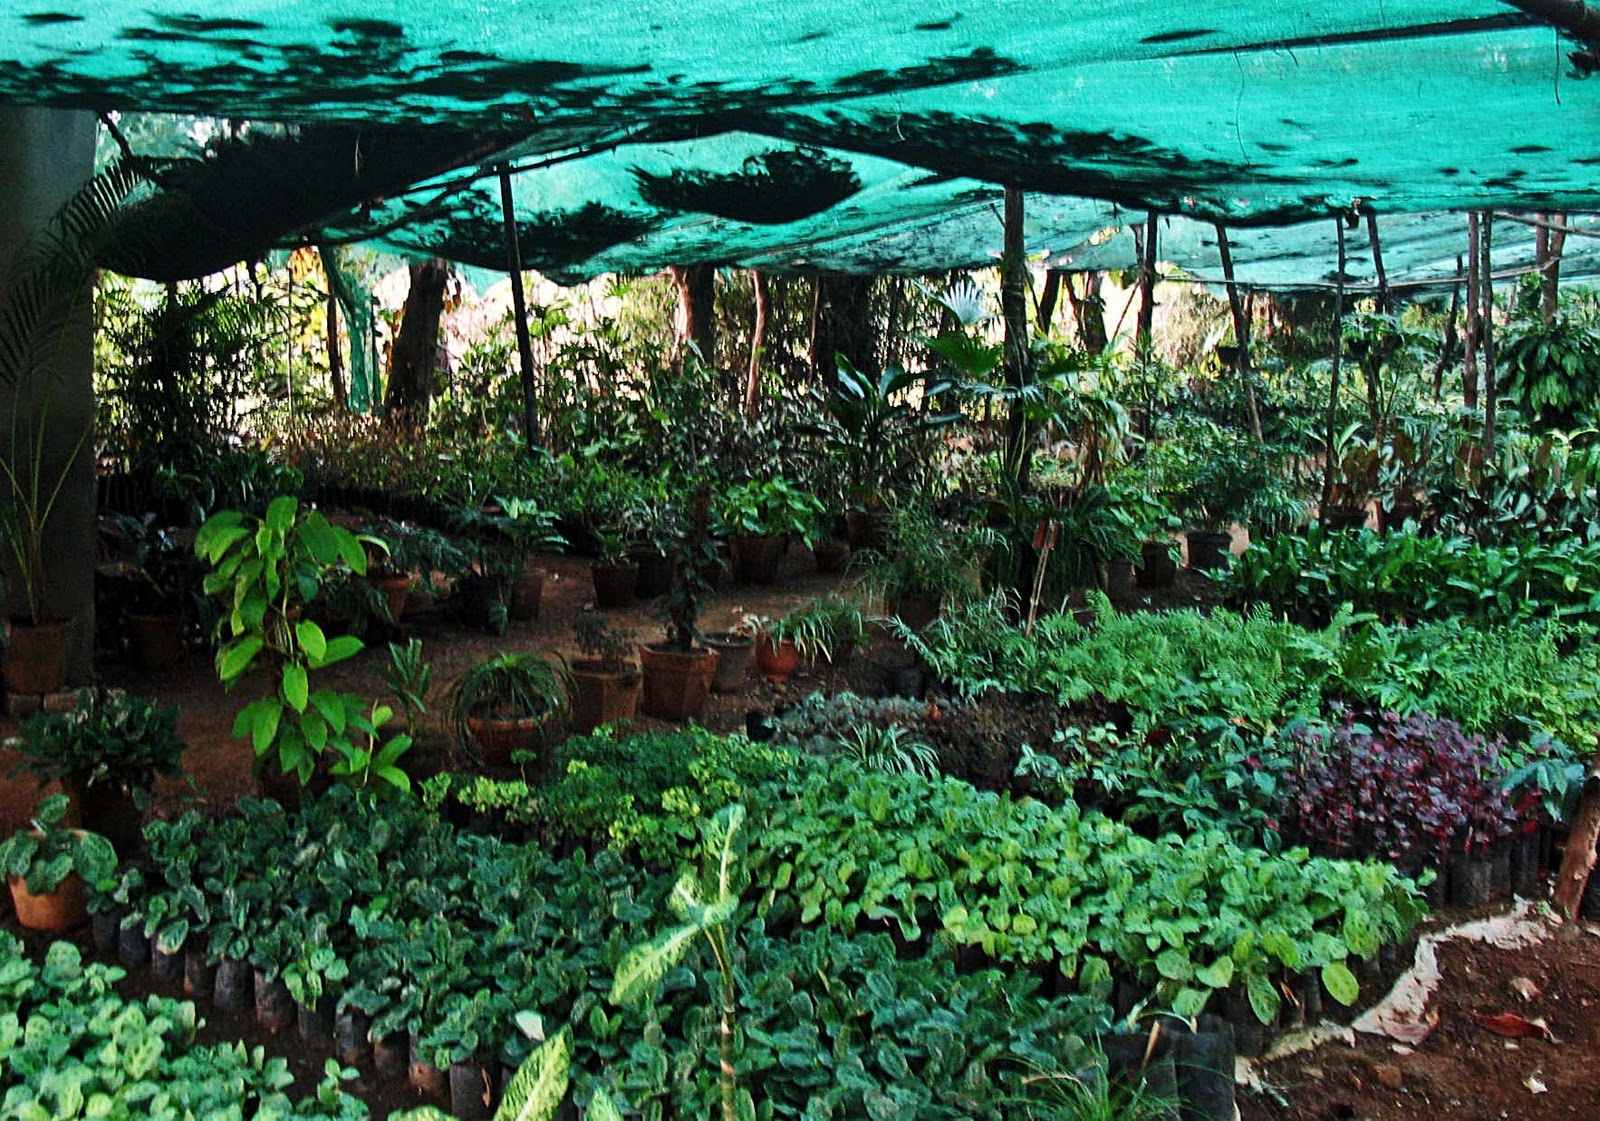 The plastic covering protects the plants from the harsh weather